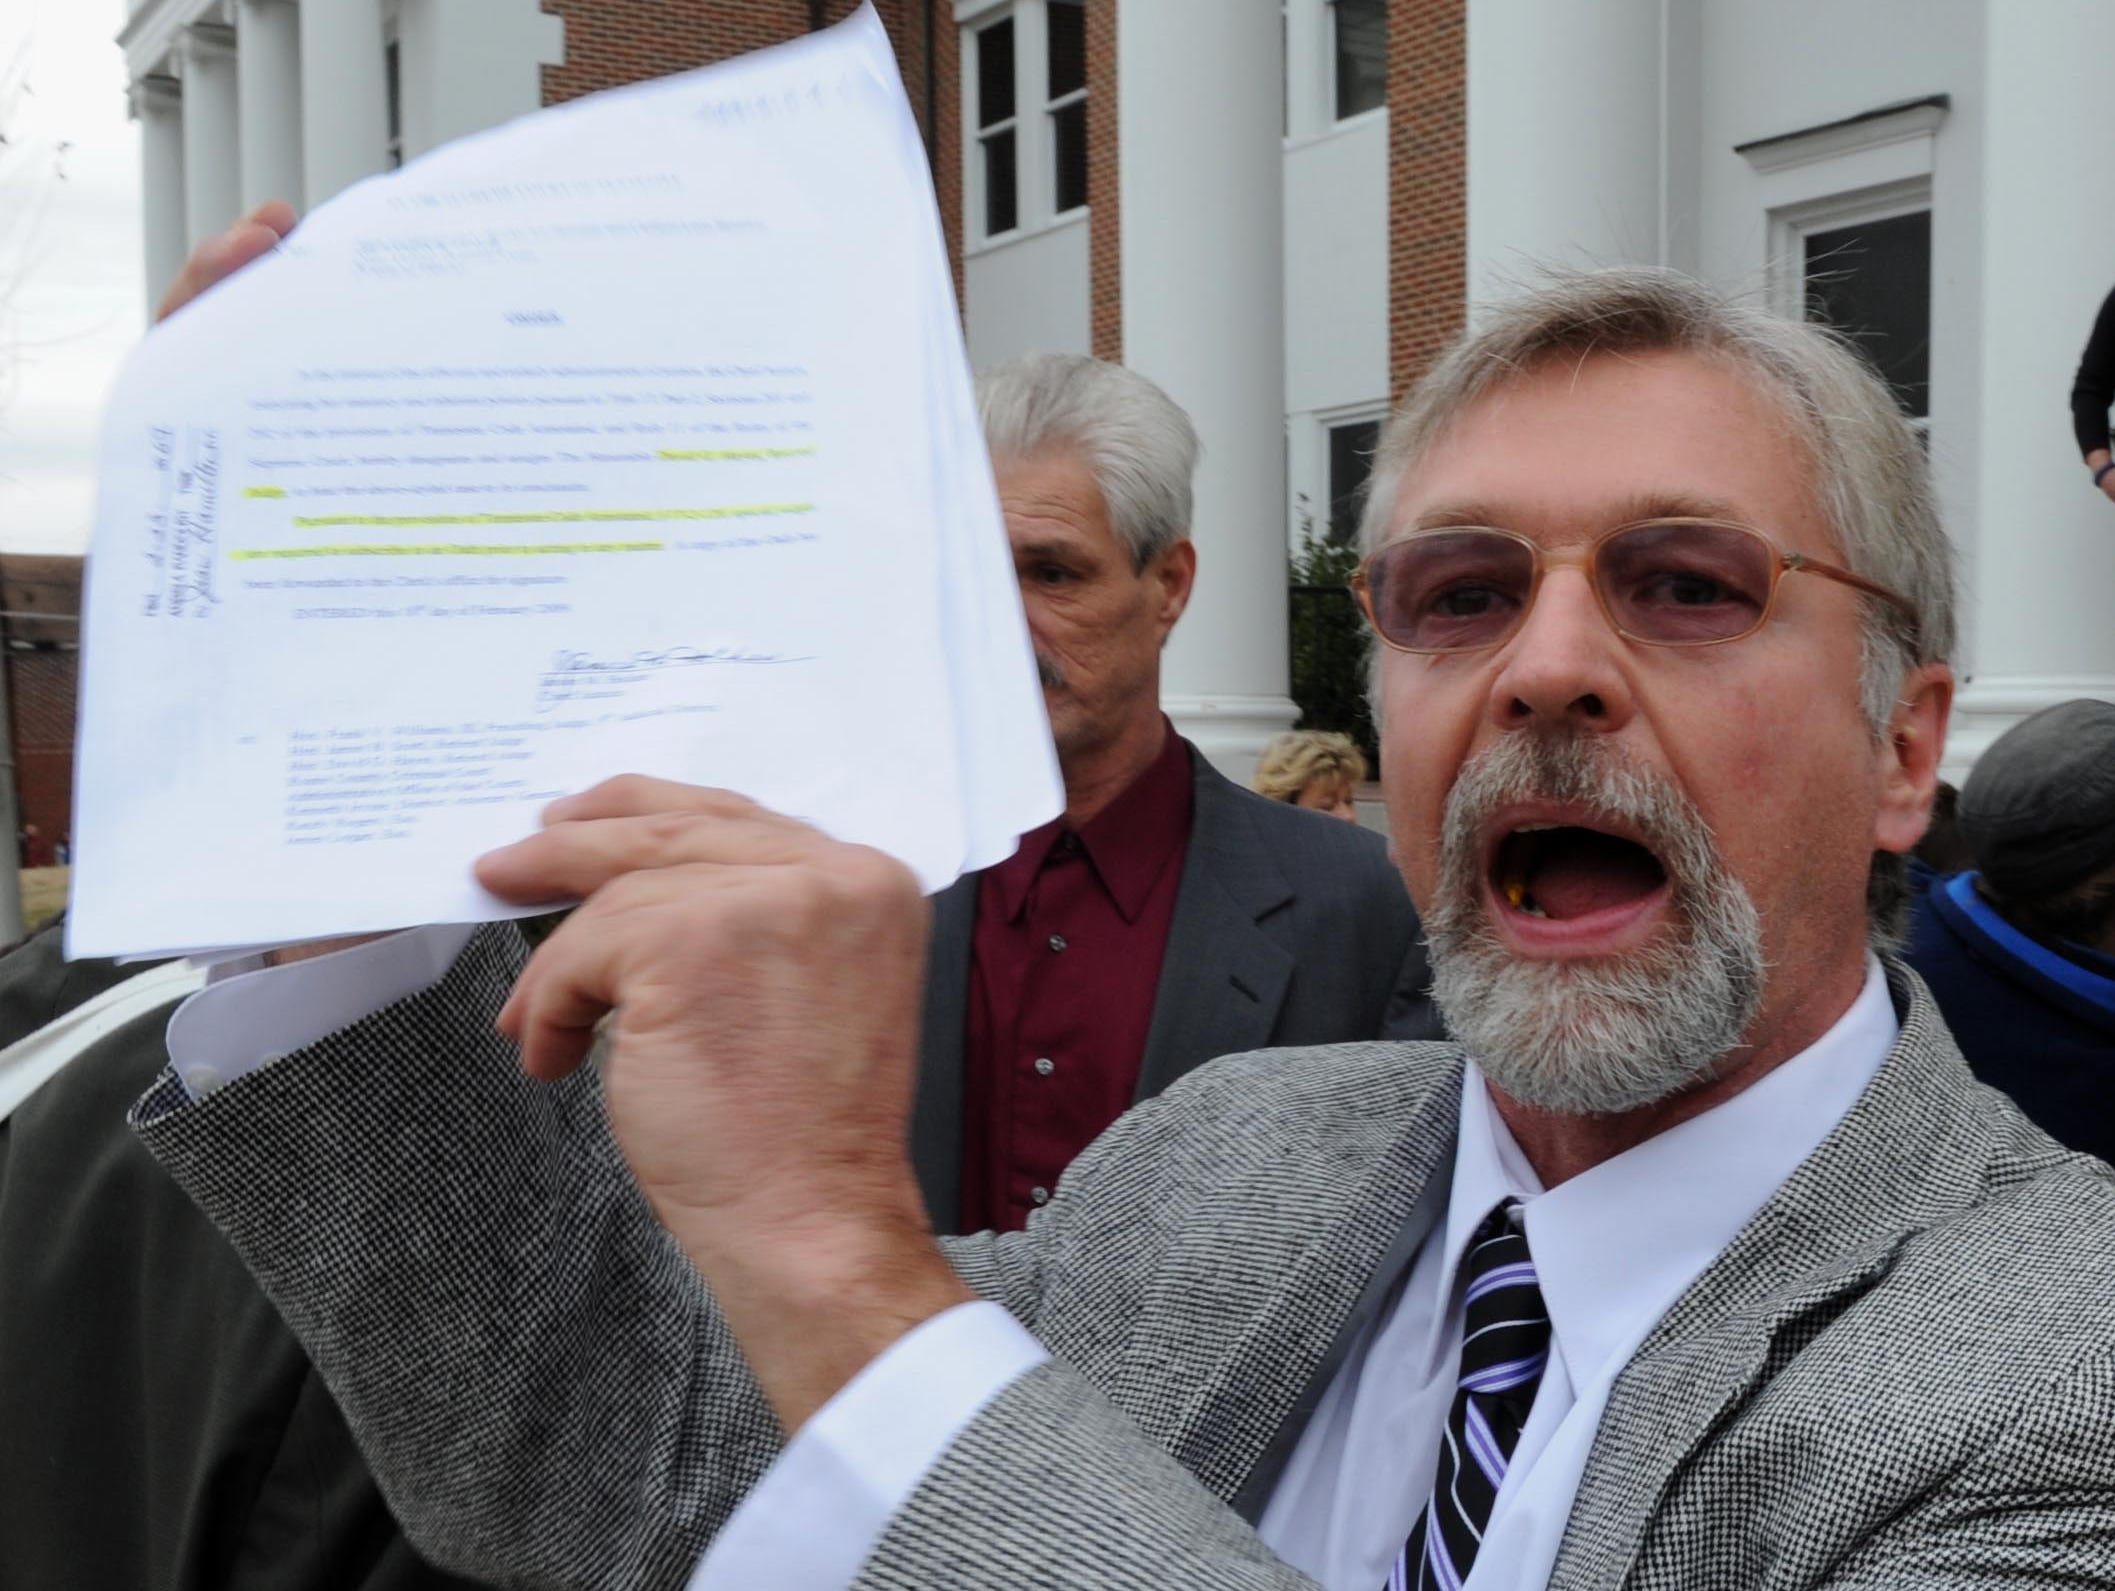 Rocky Houston holds a court order while protesting the sale of a portion of his family farm on the front steps of the Roane County Courthouse Tuesday, Jan. 4, 2011. Leon Houston's former attorney James Logan auctioned the land for unpaid legal fees.  After no buyers came forward Logan purchased the land for $150,000.